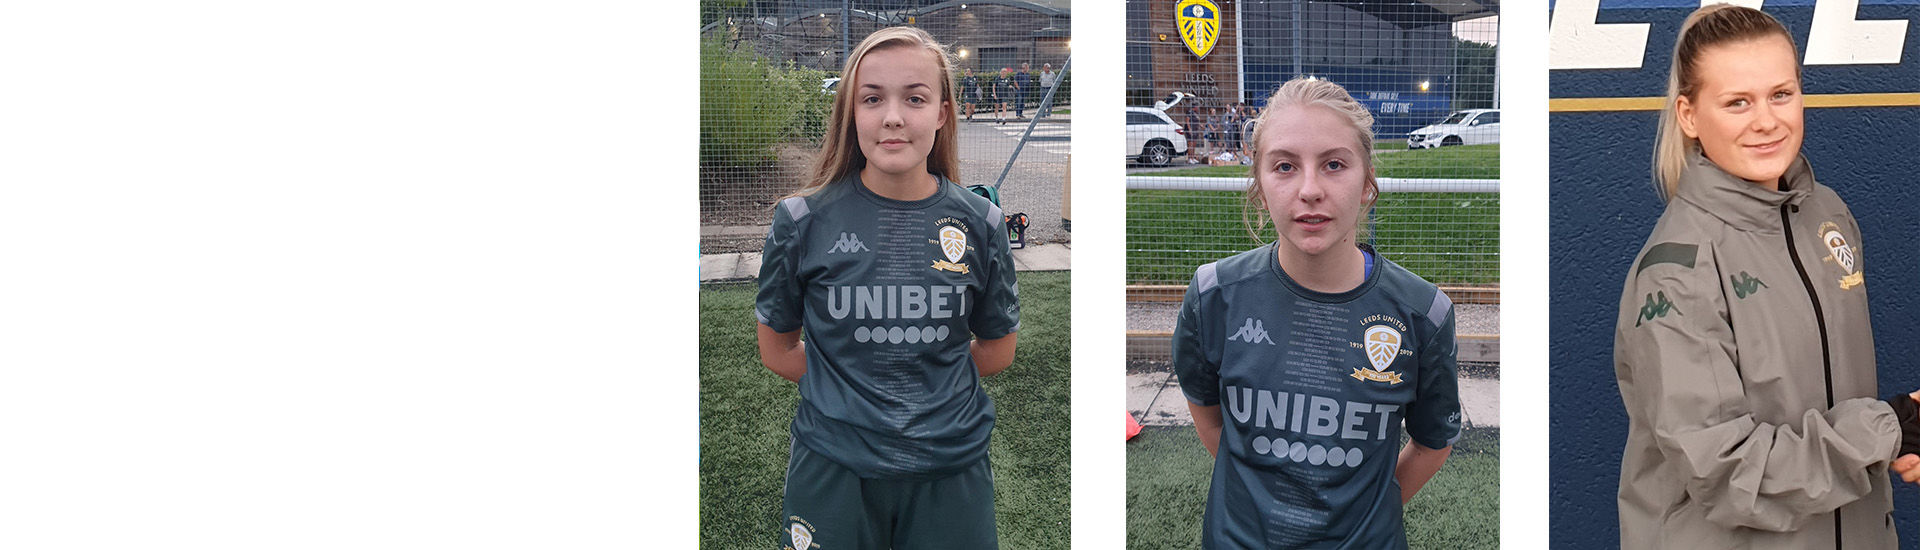 Three more signings for Leeds United Women FC - Leeds